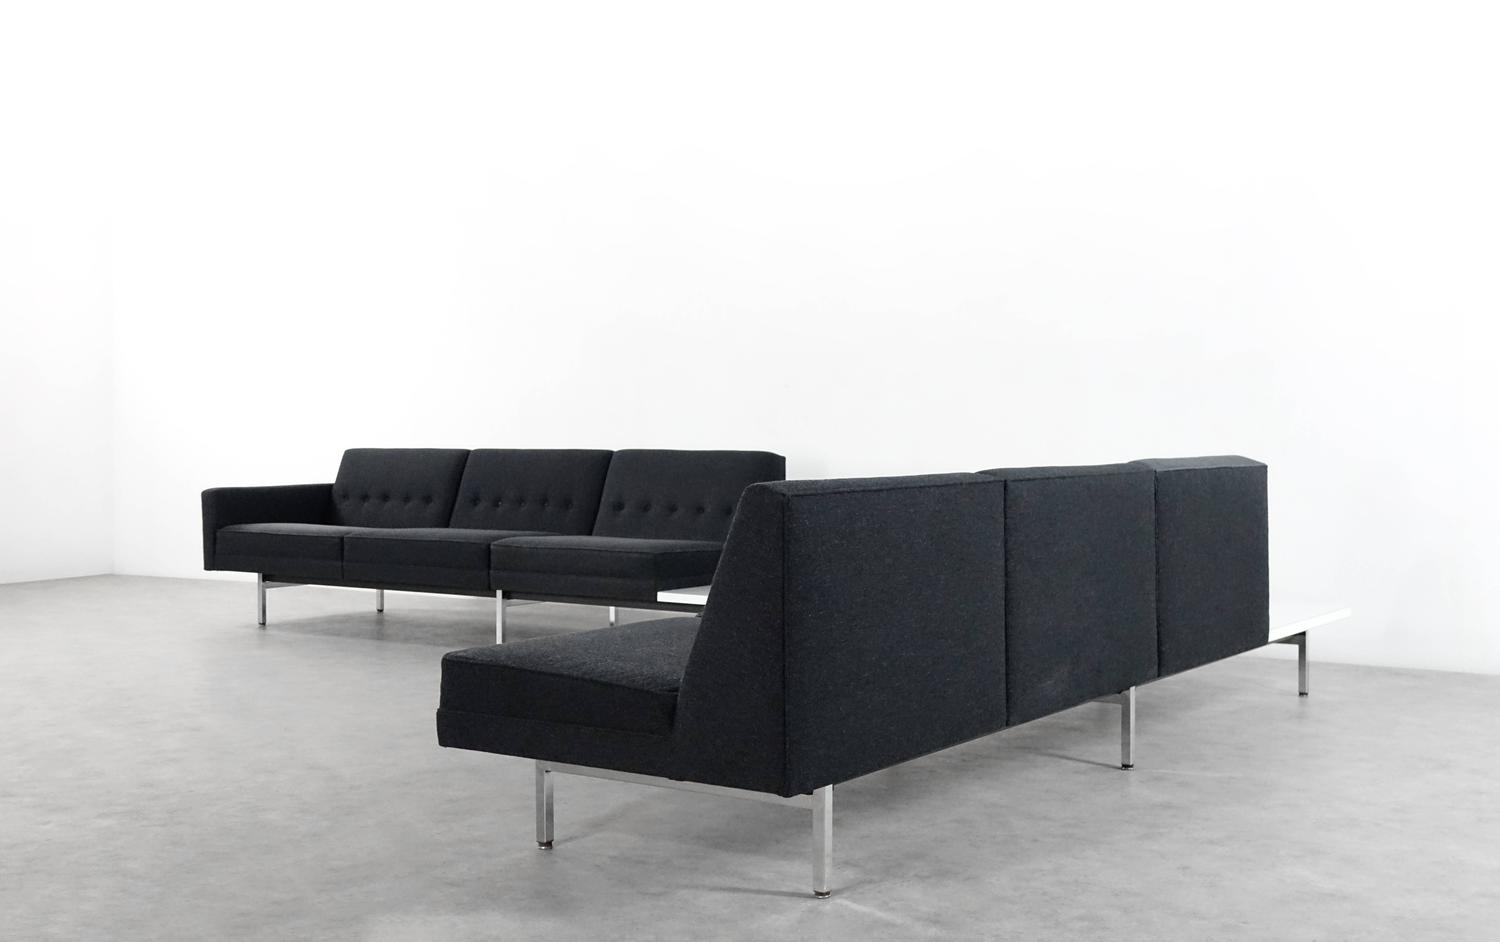 Modular System Seating Suite Sofa By George Nelson For